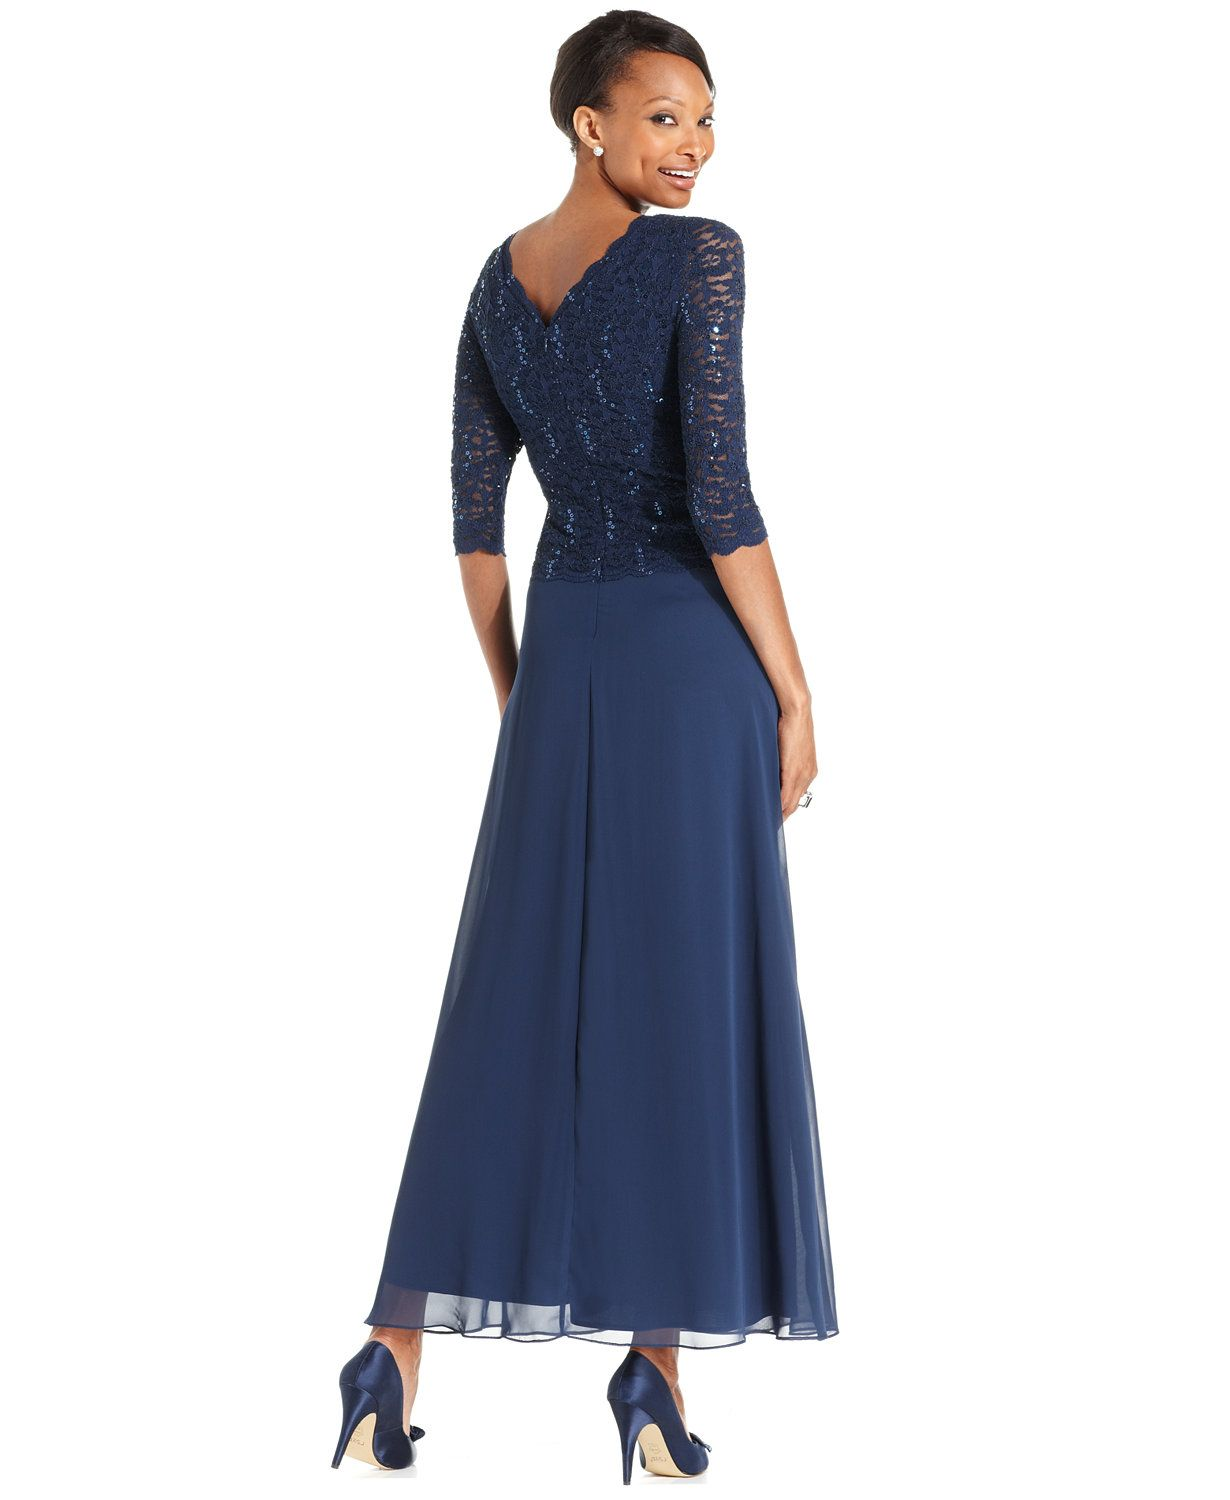 ff05667d73c Alex Evenings Elbow-Sleeve Sequined Lace Gown